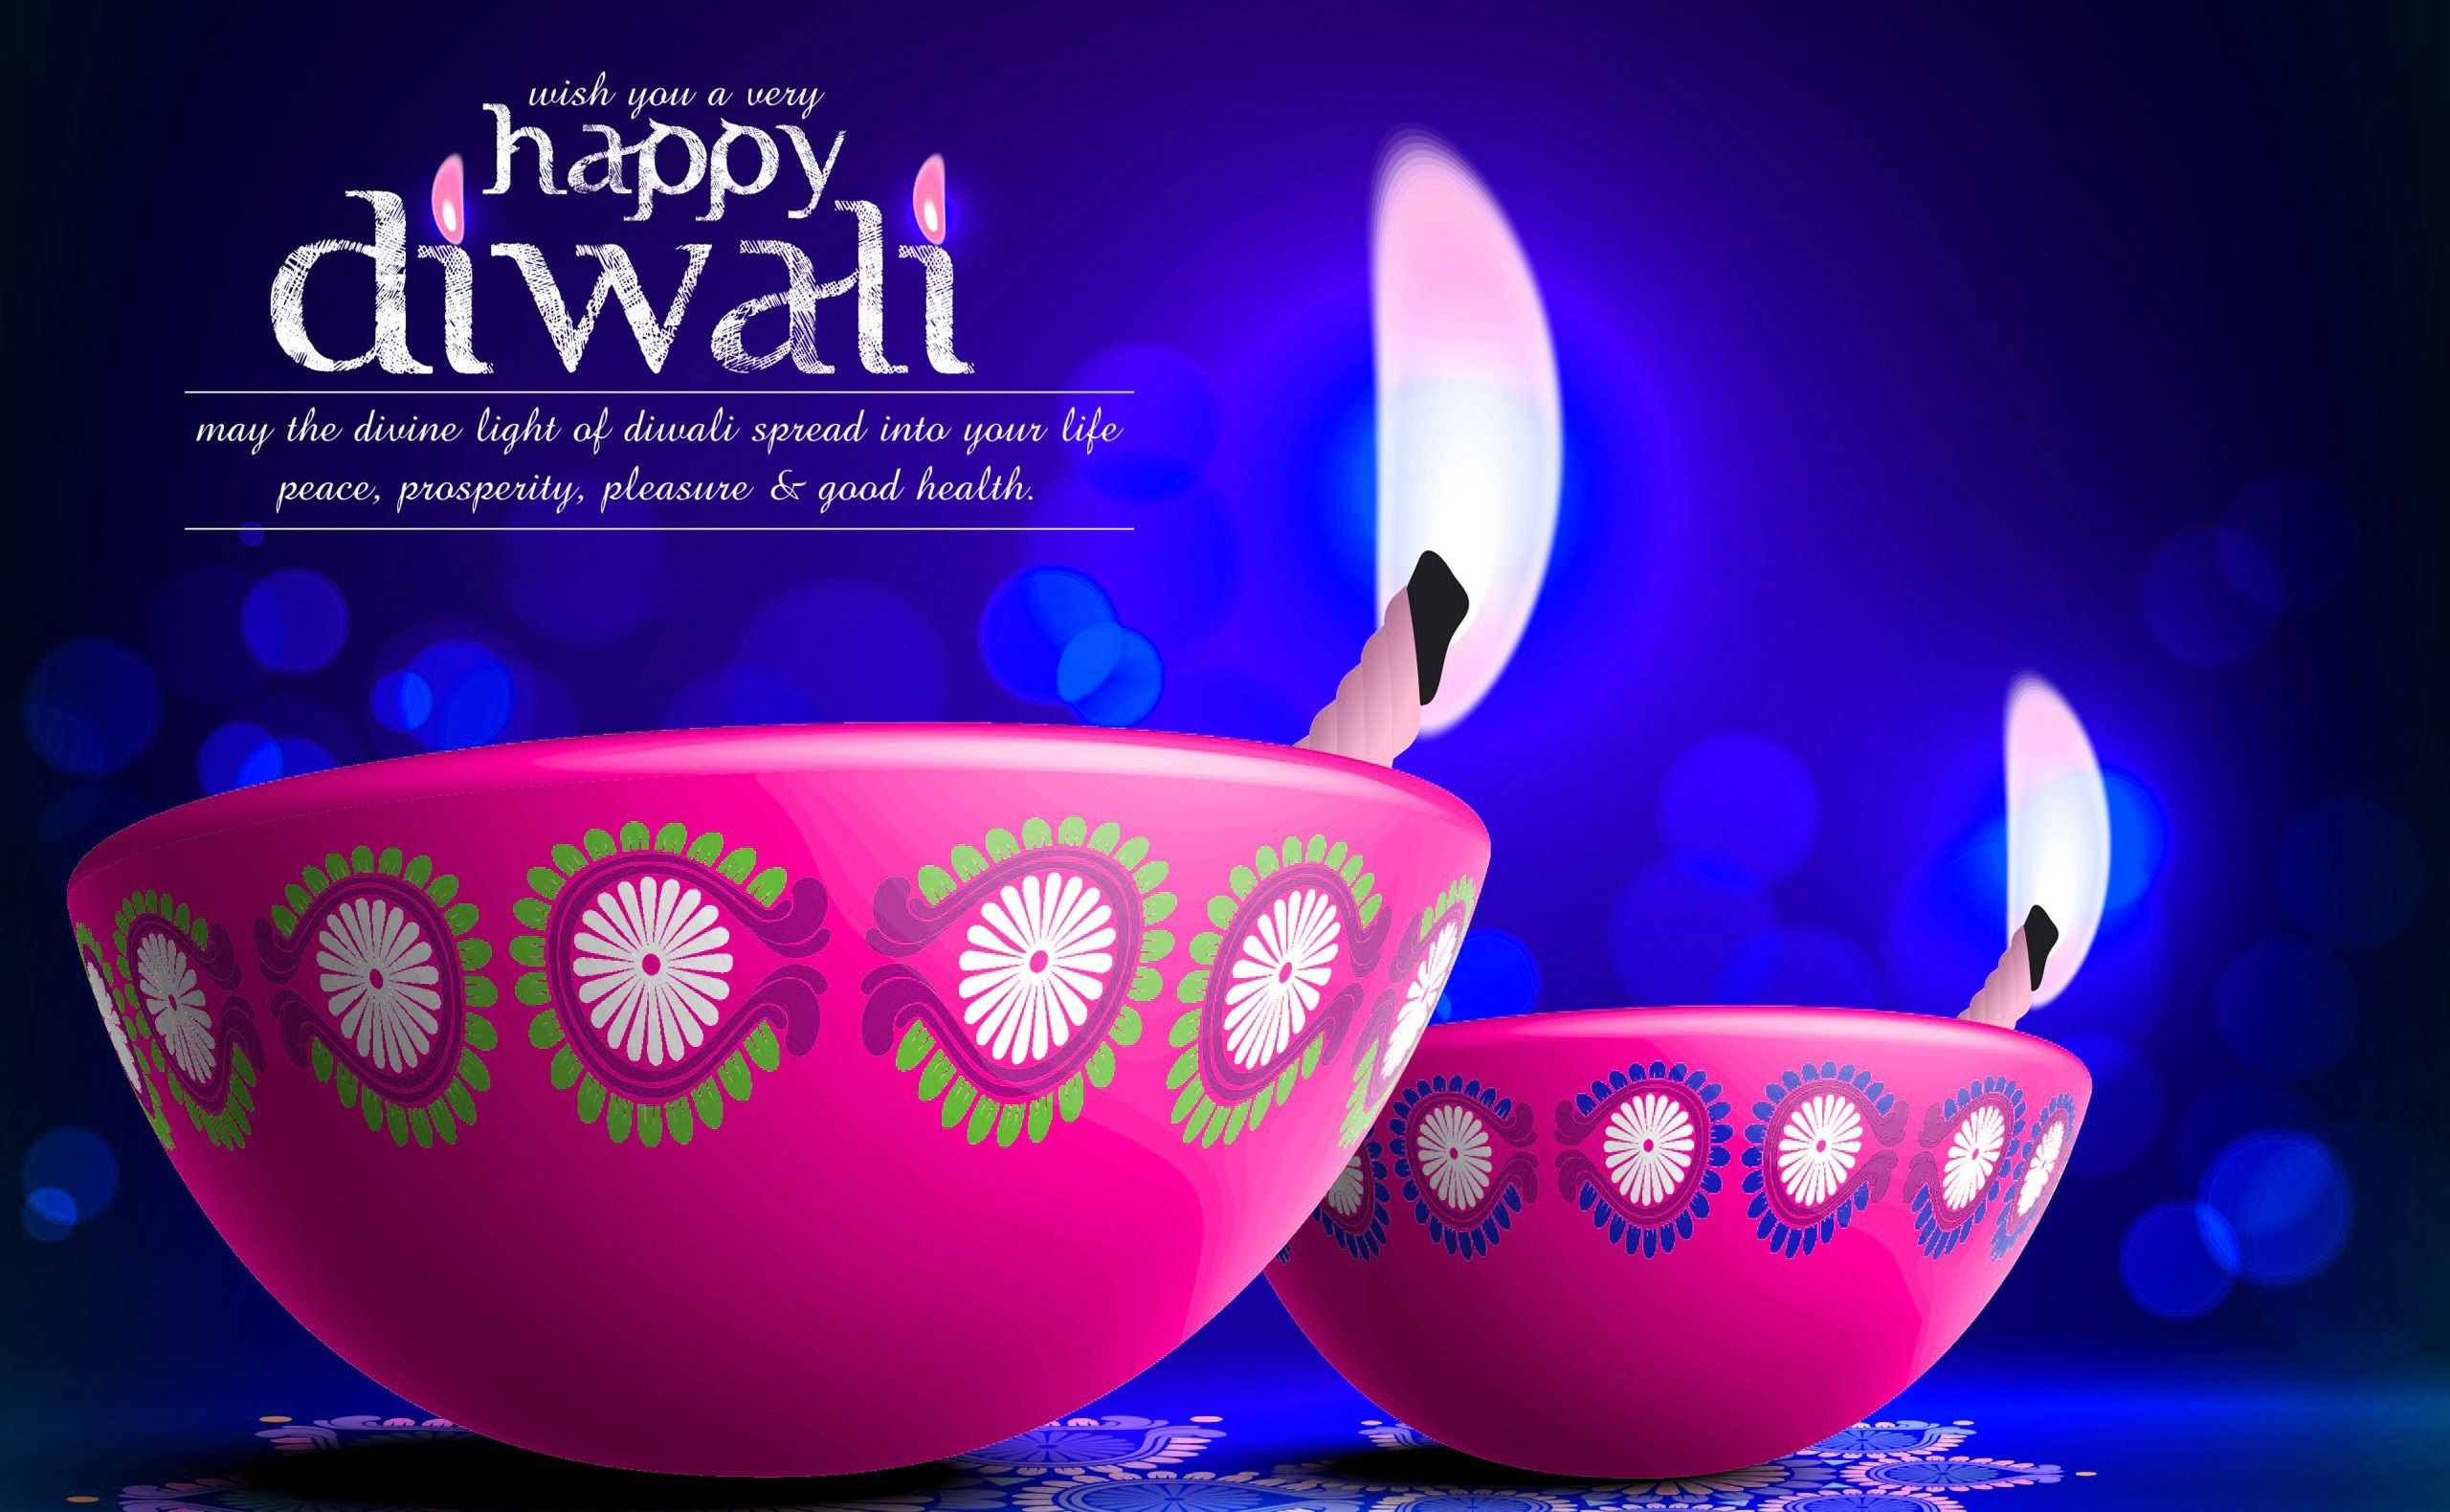 diwali wallpaper for pc, mobile, desktop background download free